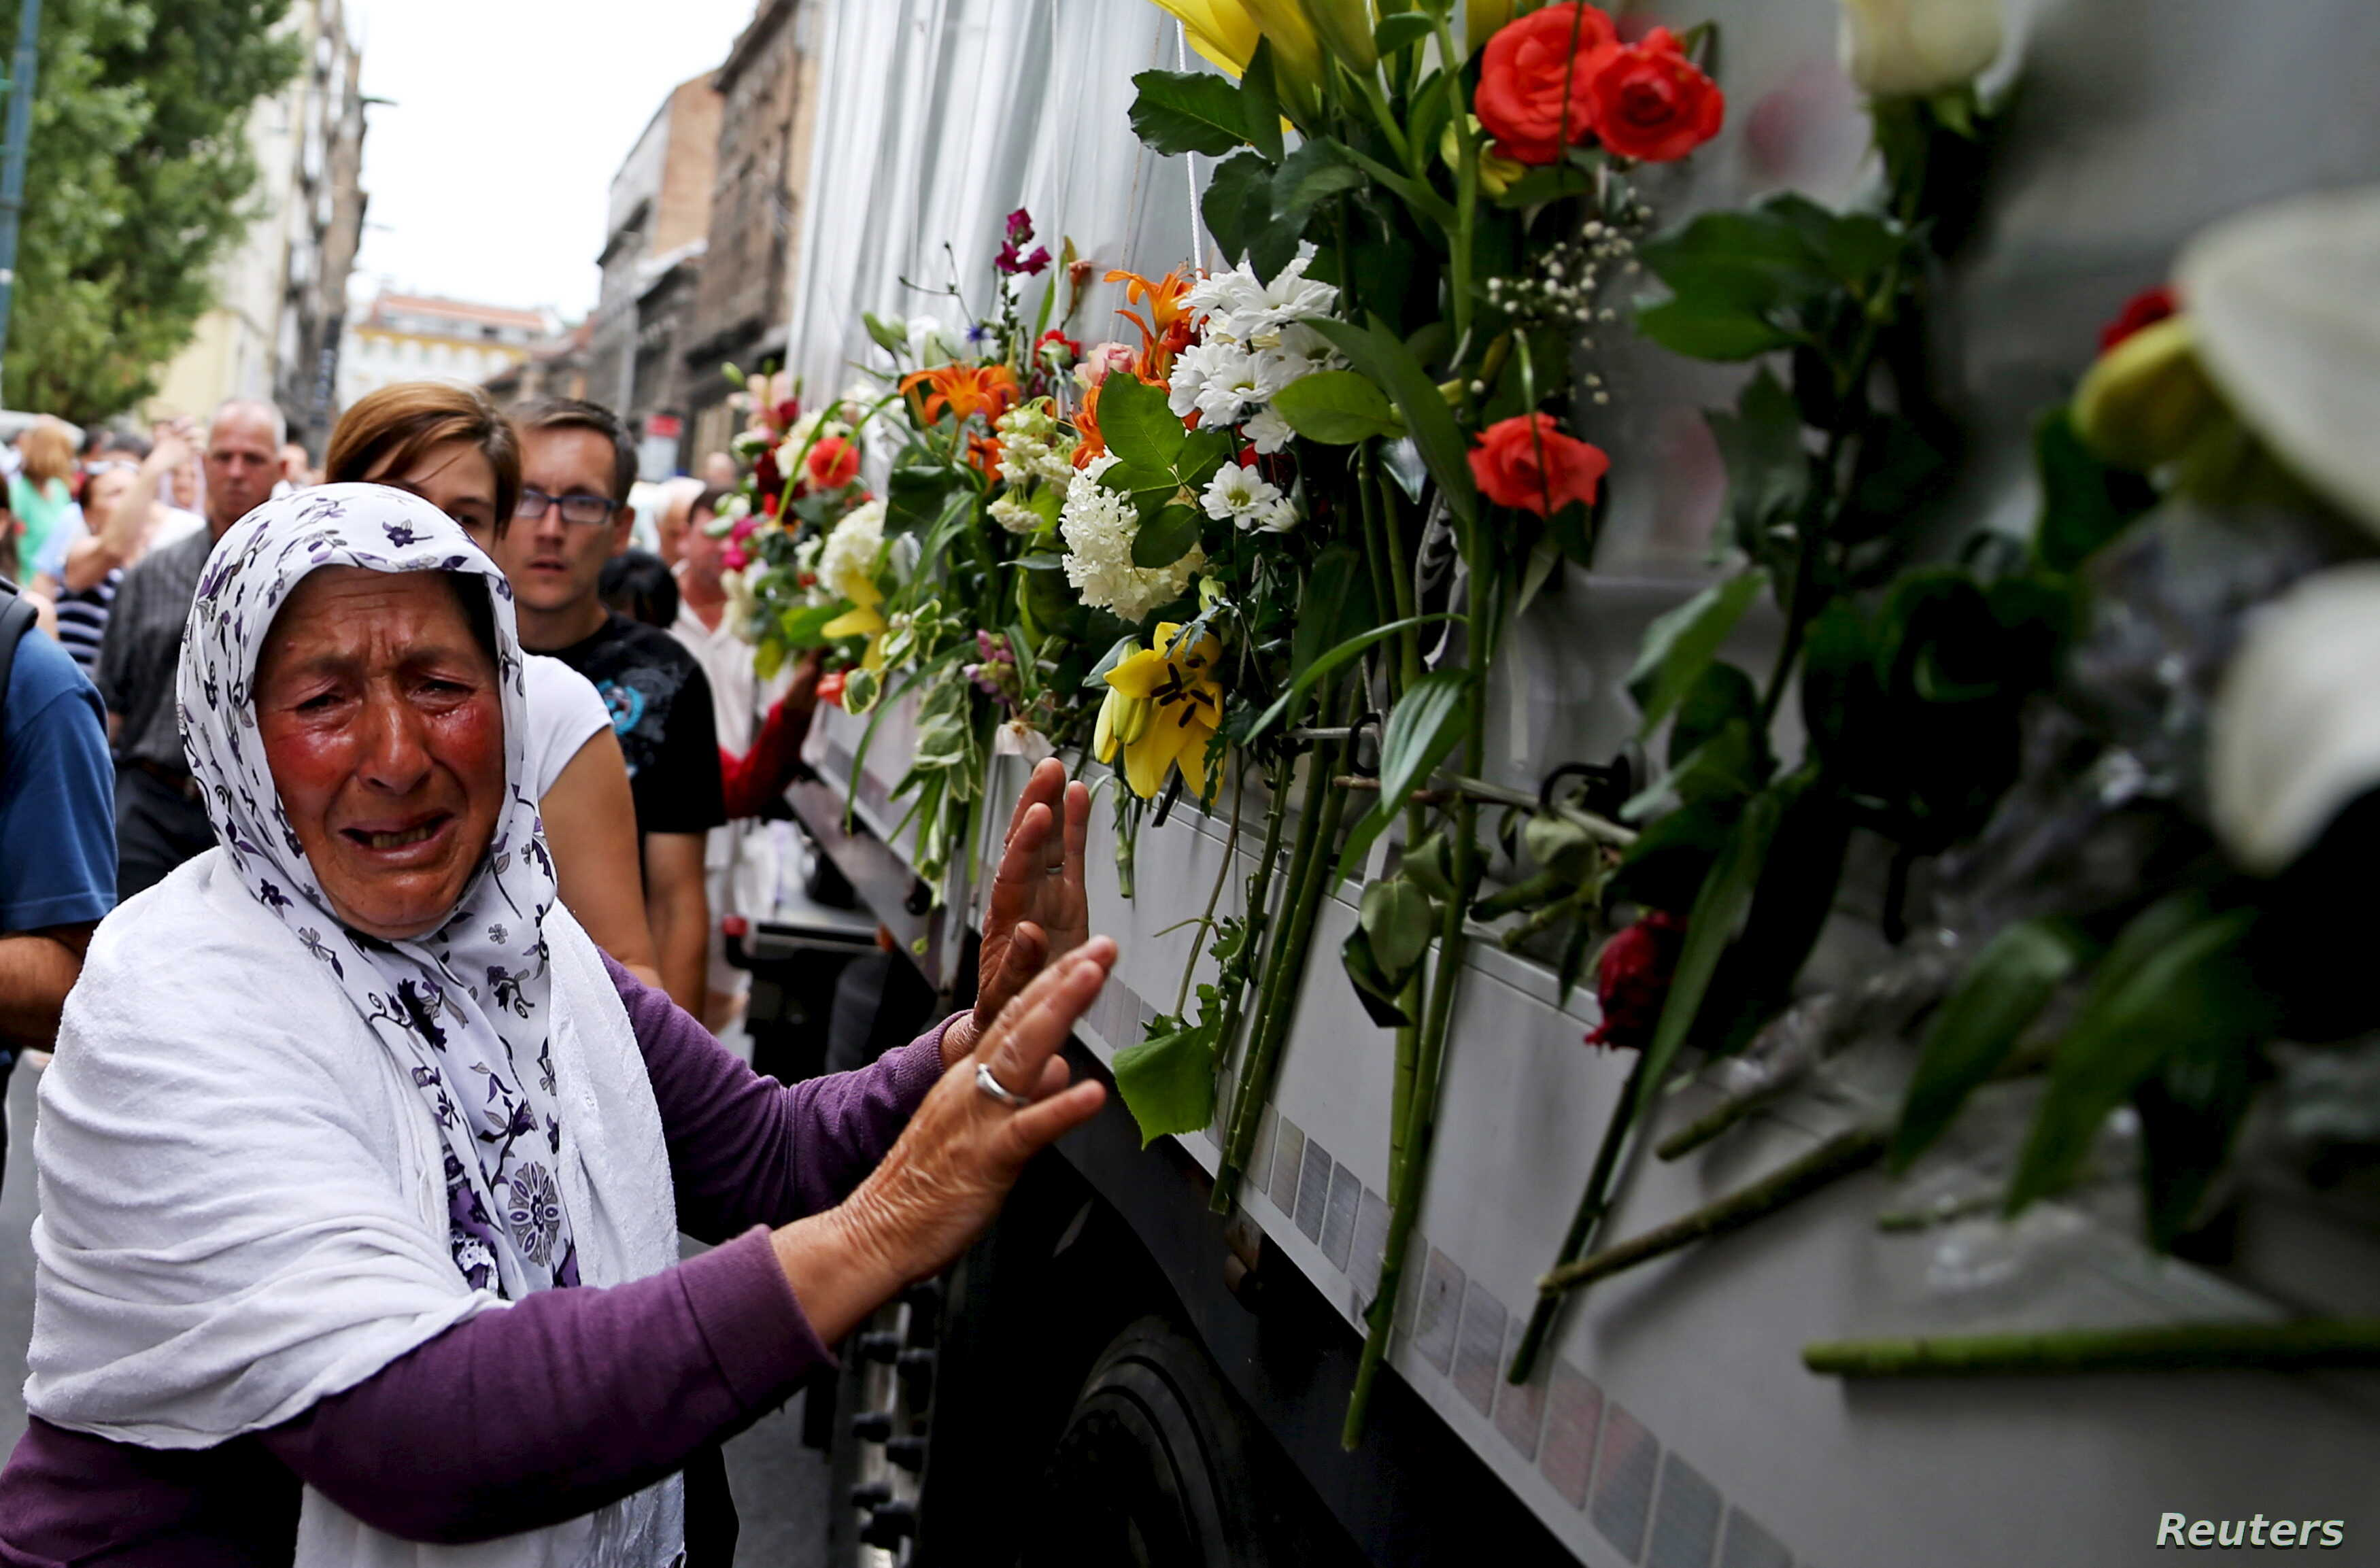 A woman cries beside a truck carrying 136 coffins of newly identified victims of the 1995 Srebrenica massacre, in front of the presidential building in Sarajevo July 9, 2015. The bodies of the 136 recently identified victims of Srebrenica massacre wi...